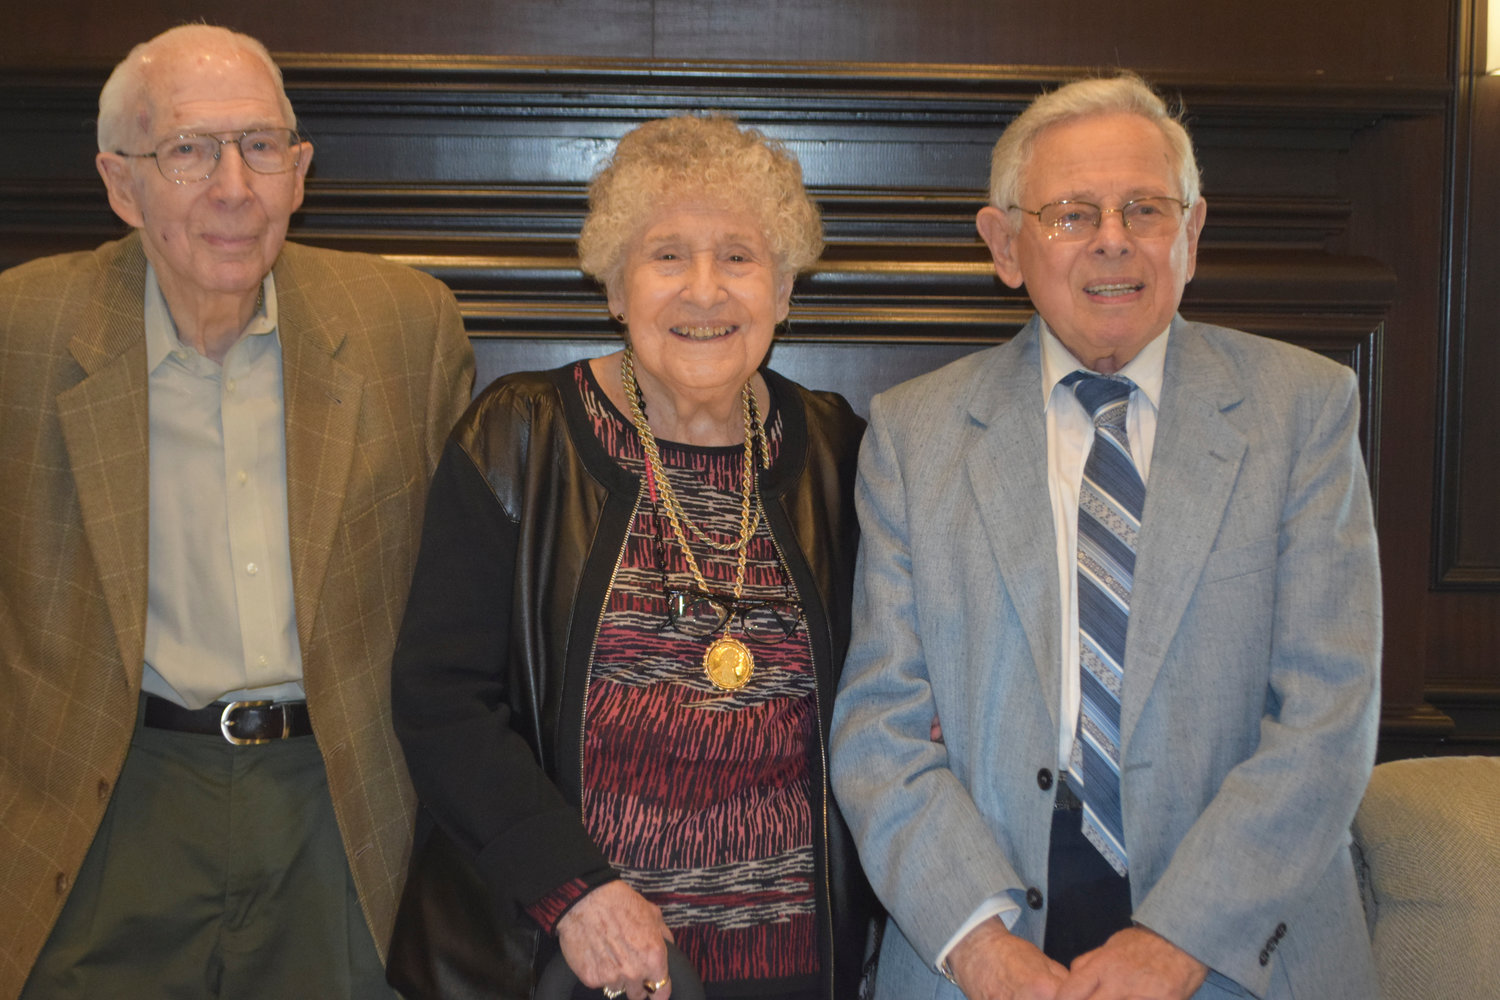 The Center for Adult Life Enrichment held its annual luncheon at the Seawane Country Club on May 15, and honored long-standing members: Don Newman, left, Claire Ganzfried and Stanley Brill.